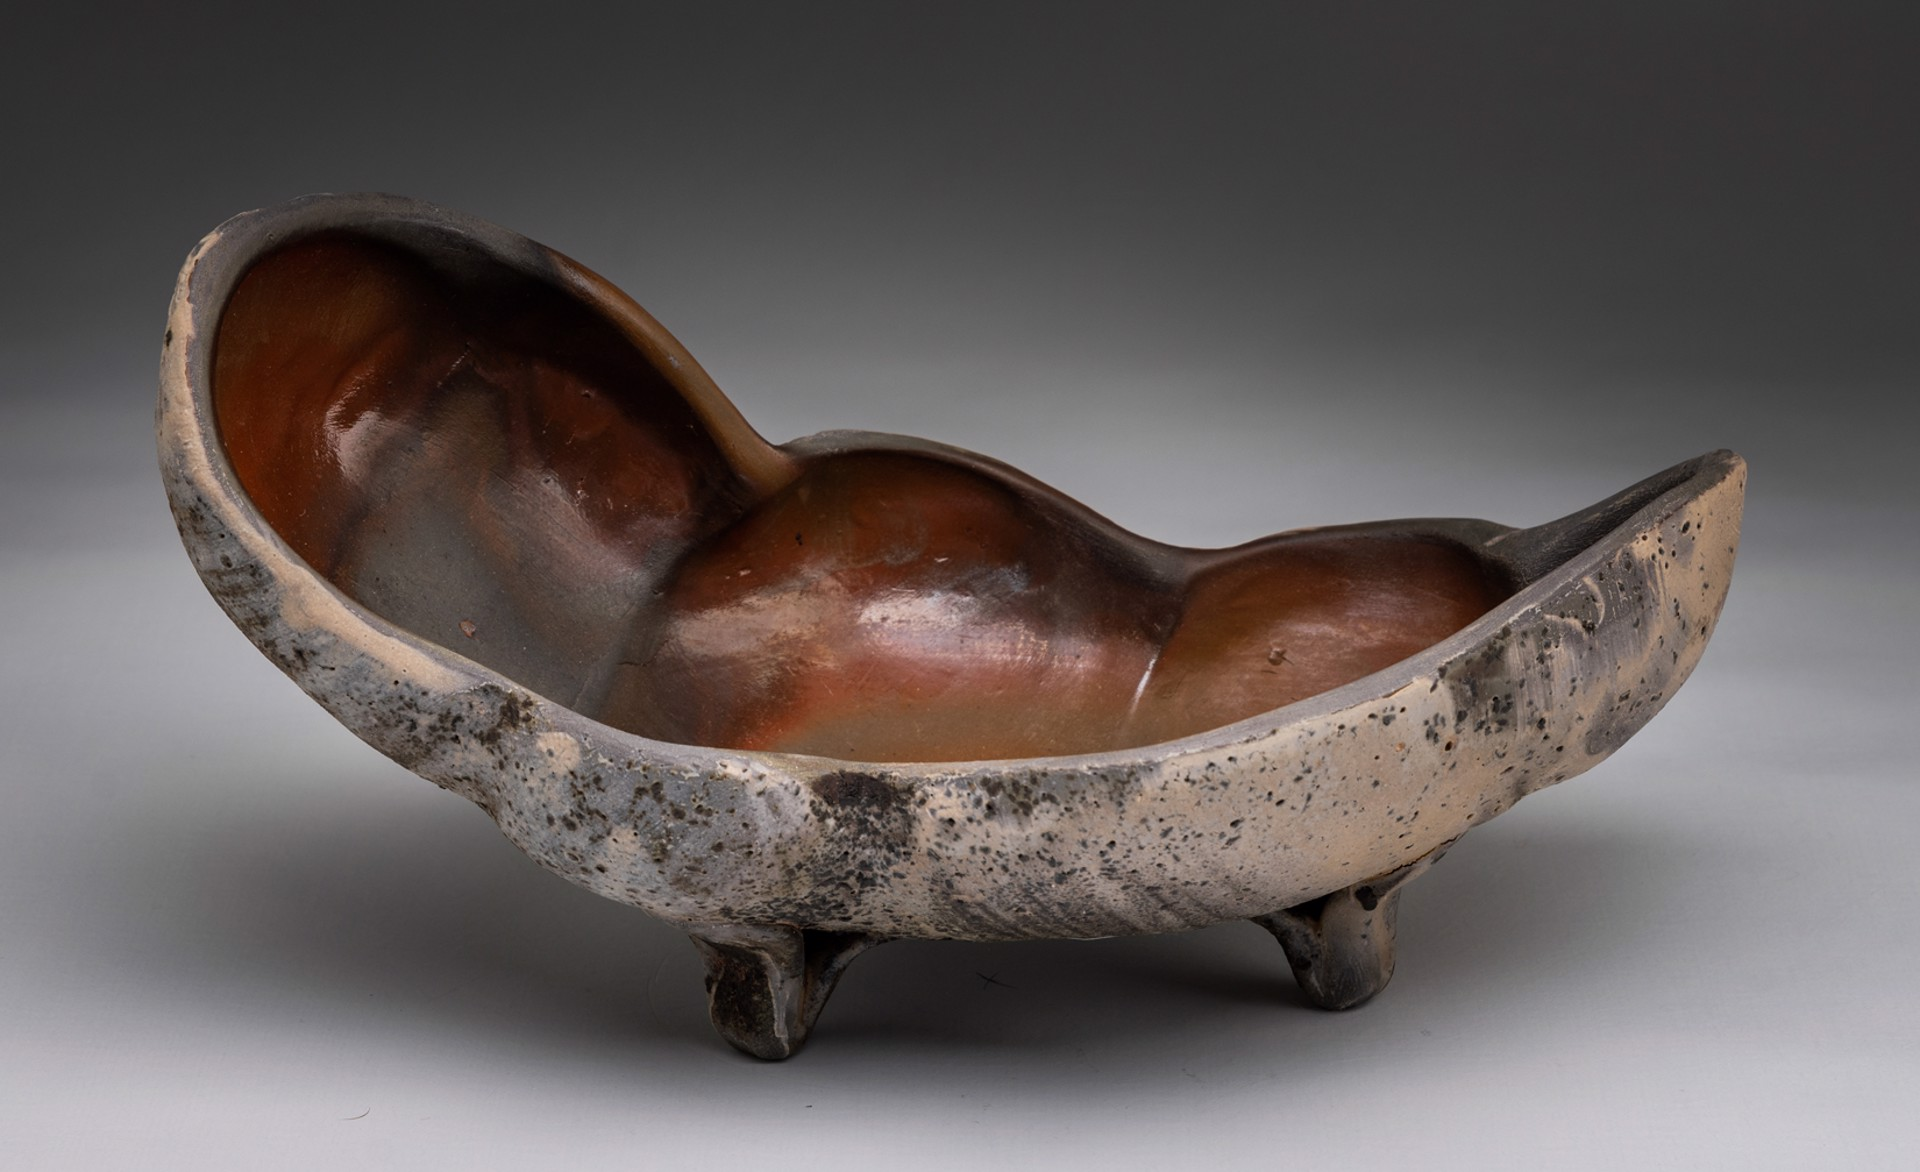 Caterpillar Bowl by Catherine White